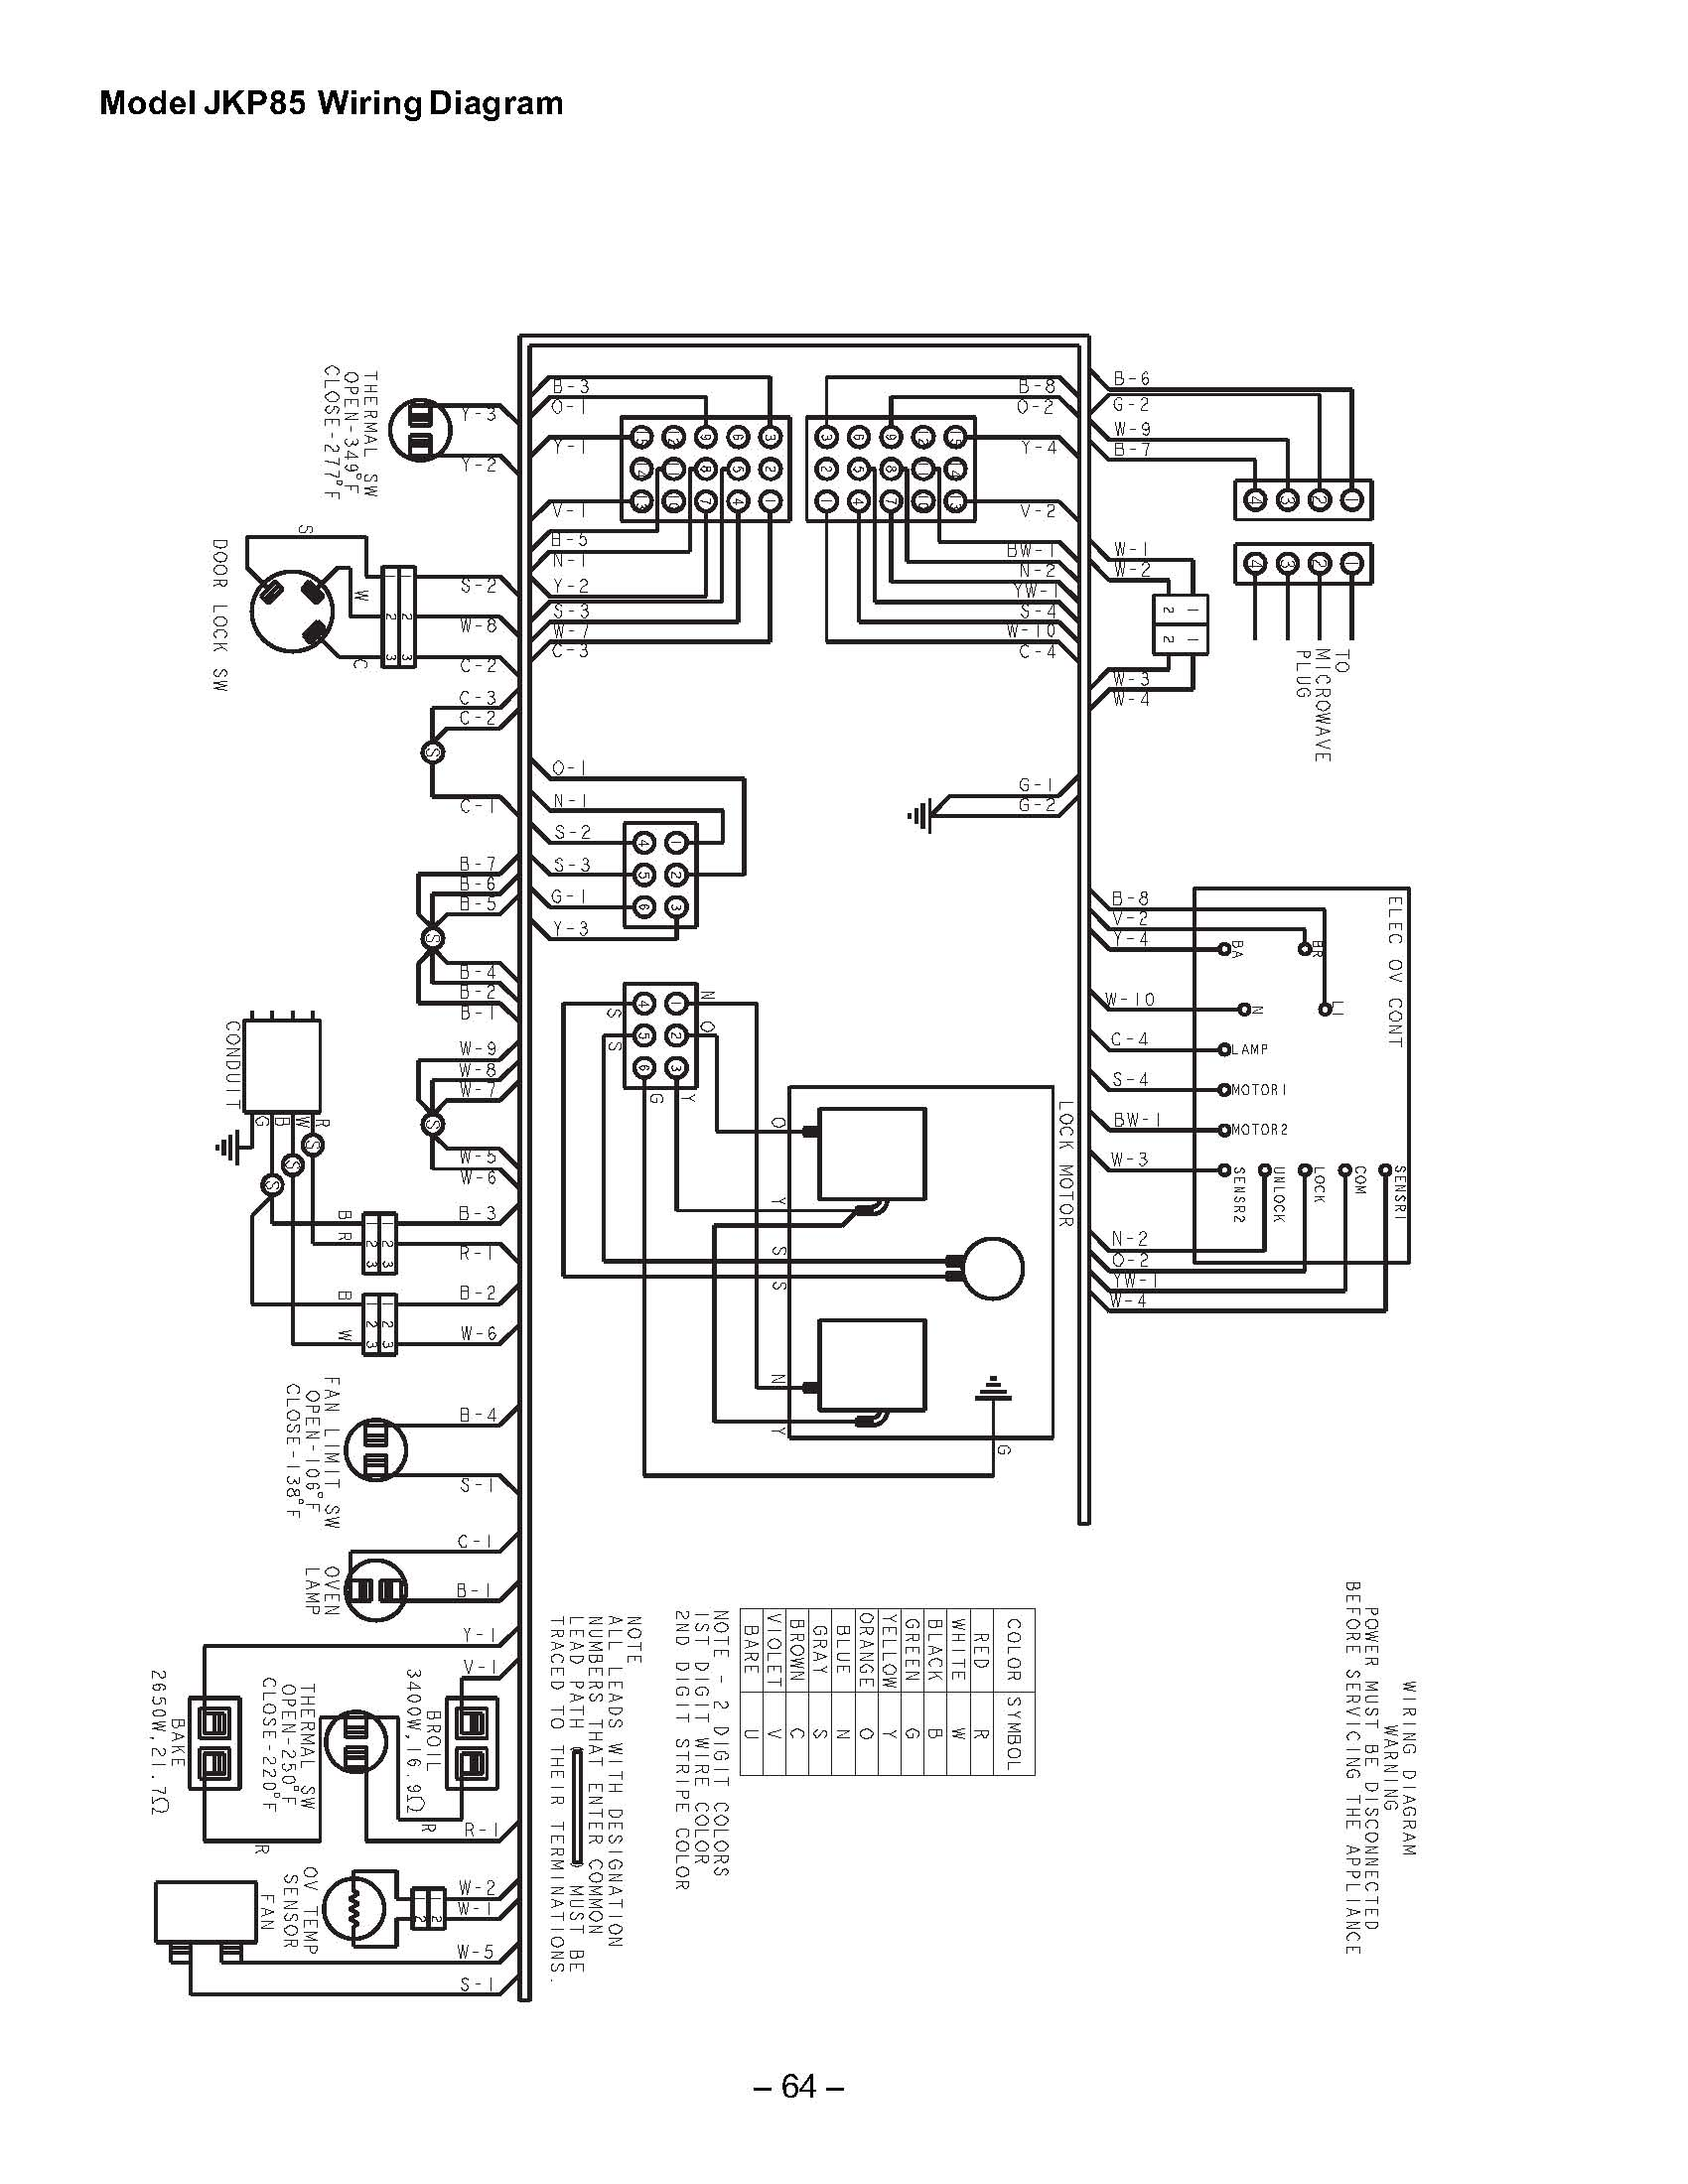 ge oven control panel wiring diagram homebrew control panel wiring diagram my problem is a completely dead ge jkp85 combination ...